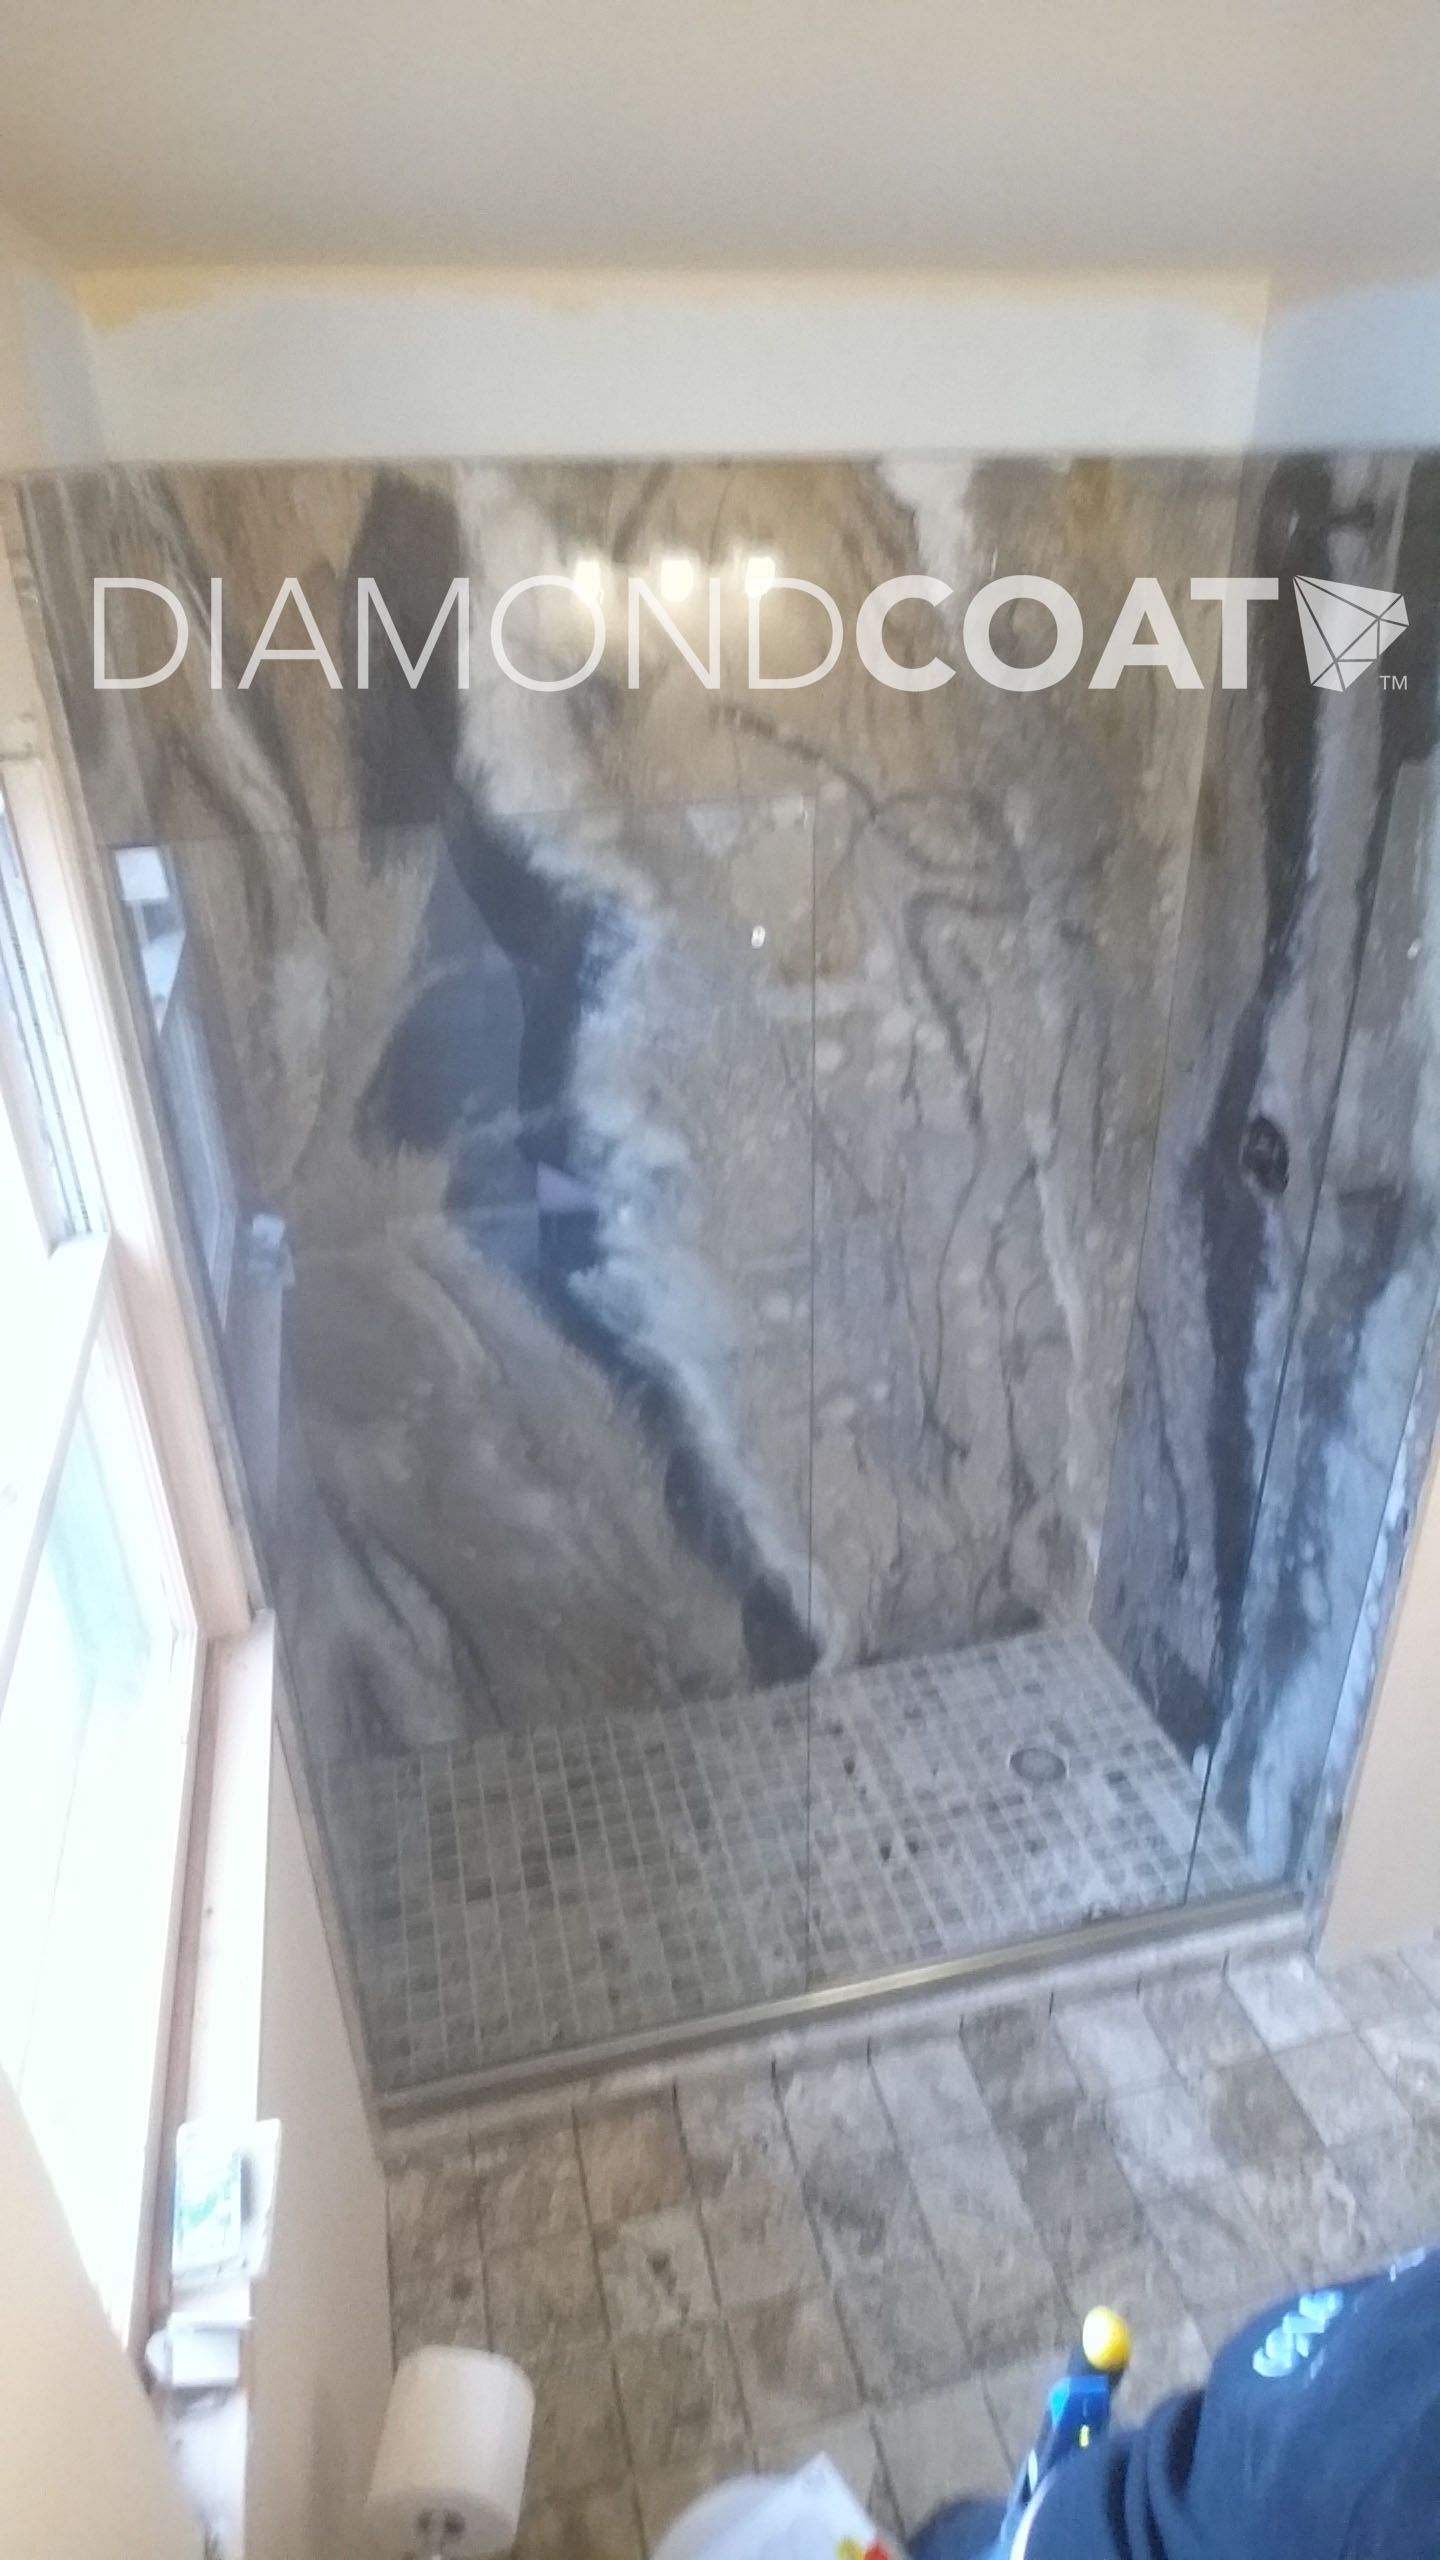 Merveilleux Gorgeous Epoxy Shower Walls, Installed By Our Diamond Coat Team!